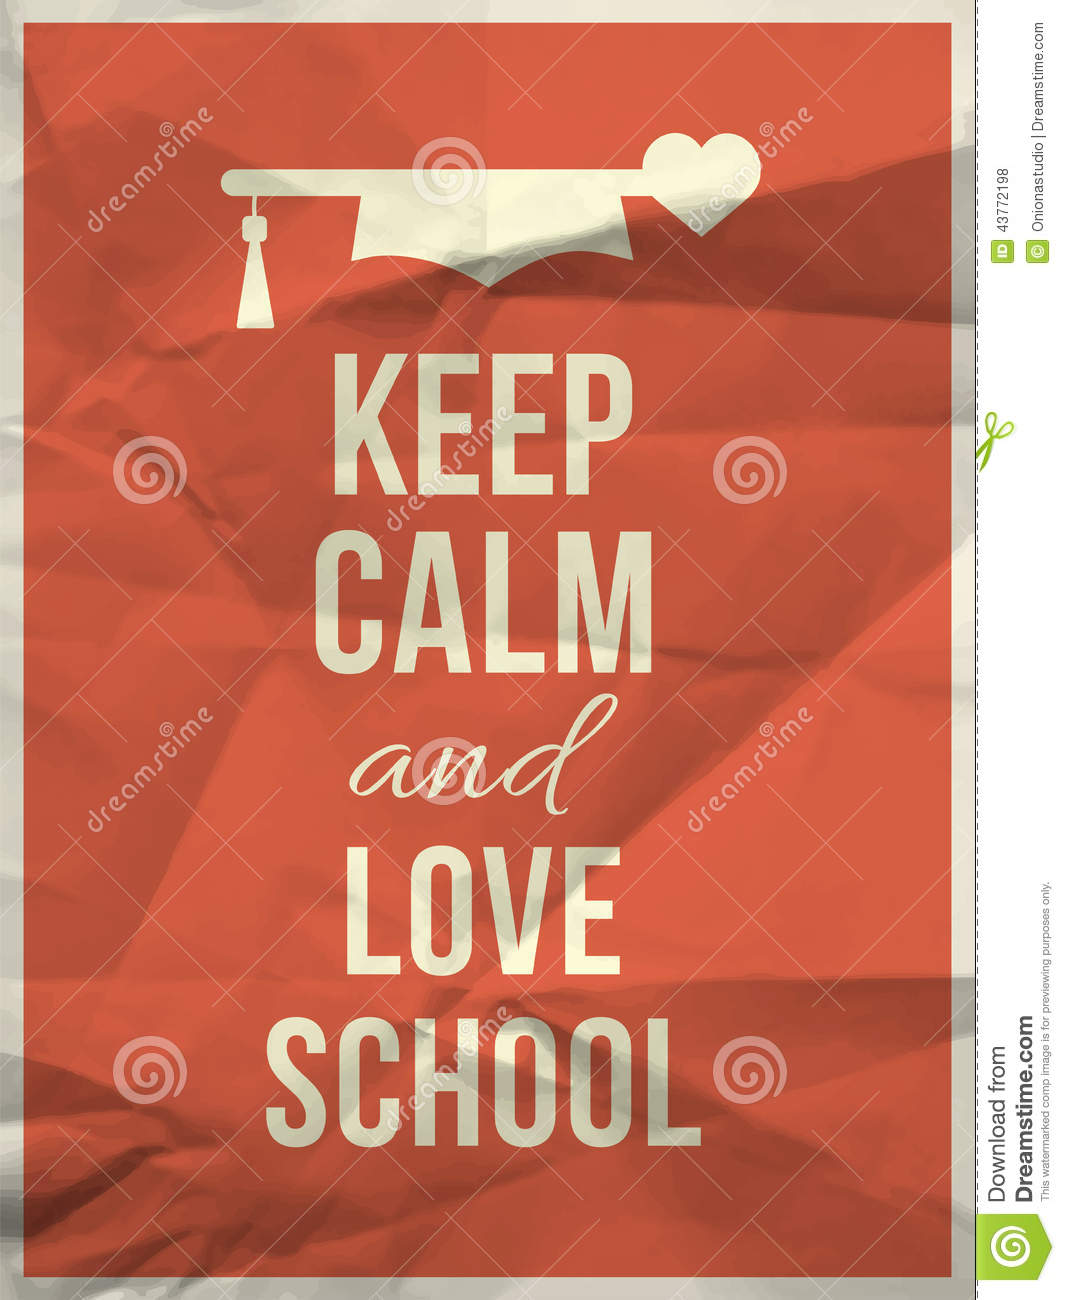 Keep Calm Love School Design Quote With Graduation Hat Hearth Stock